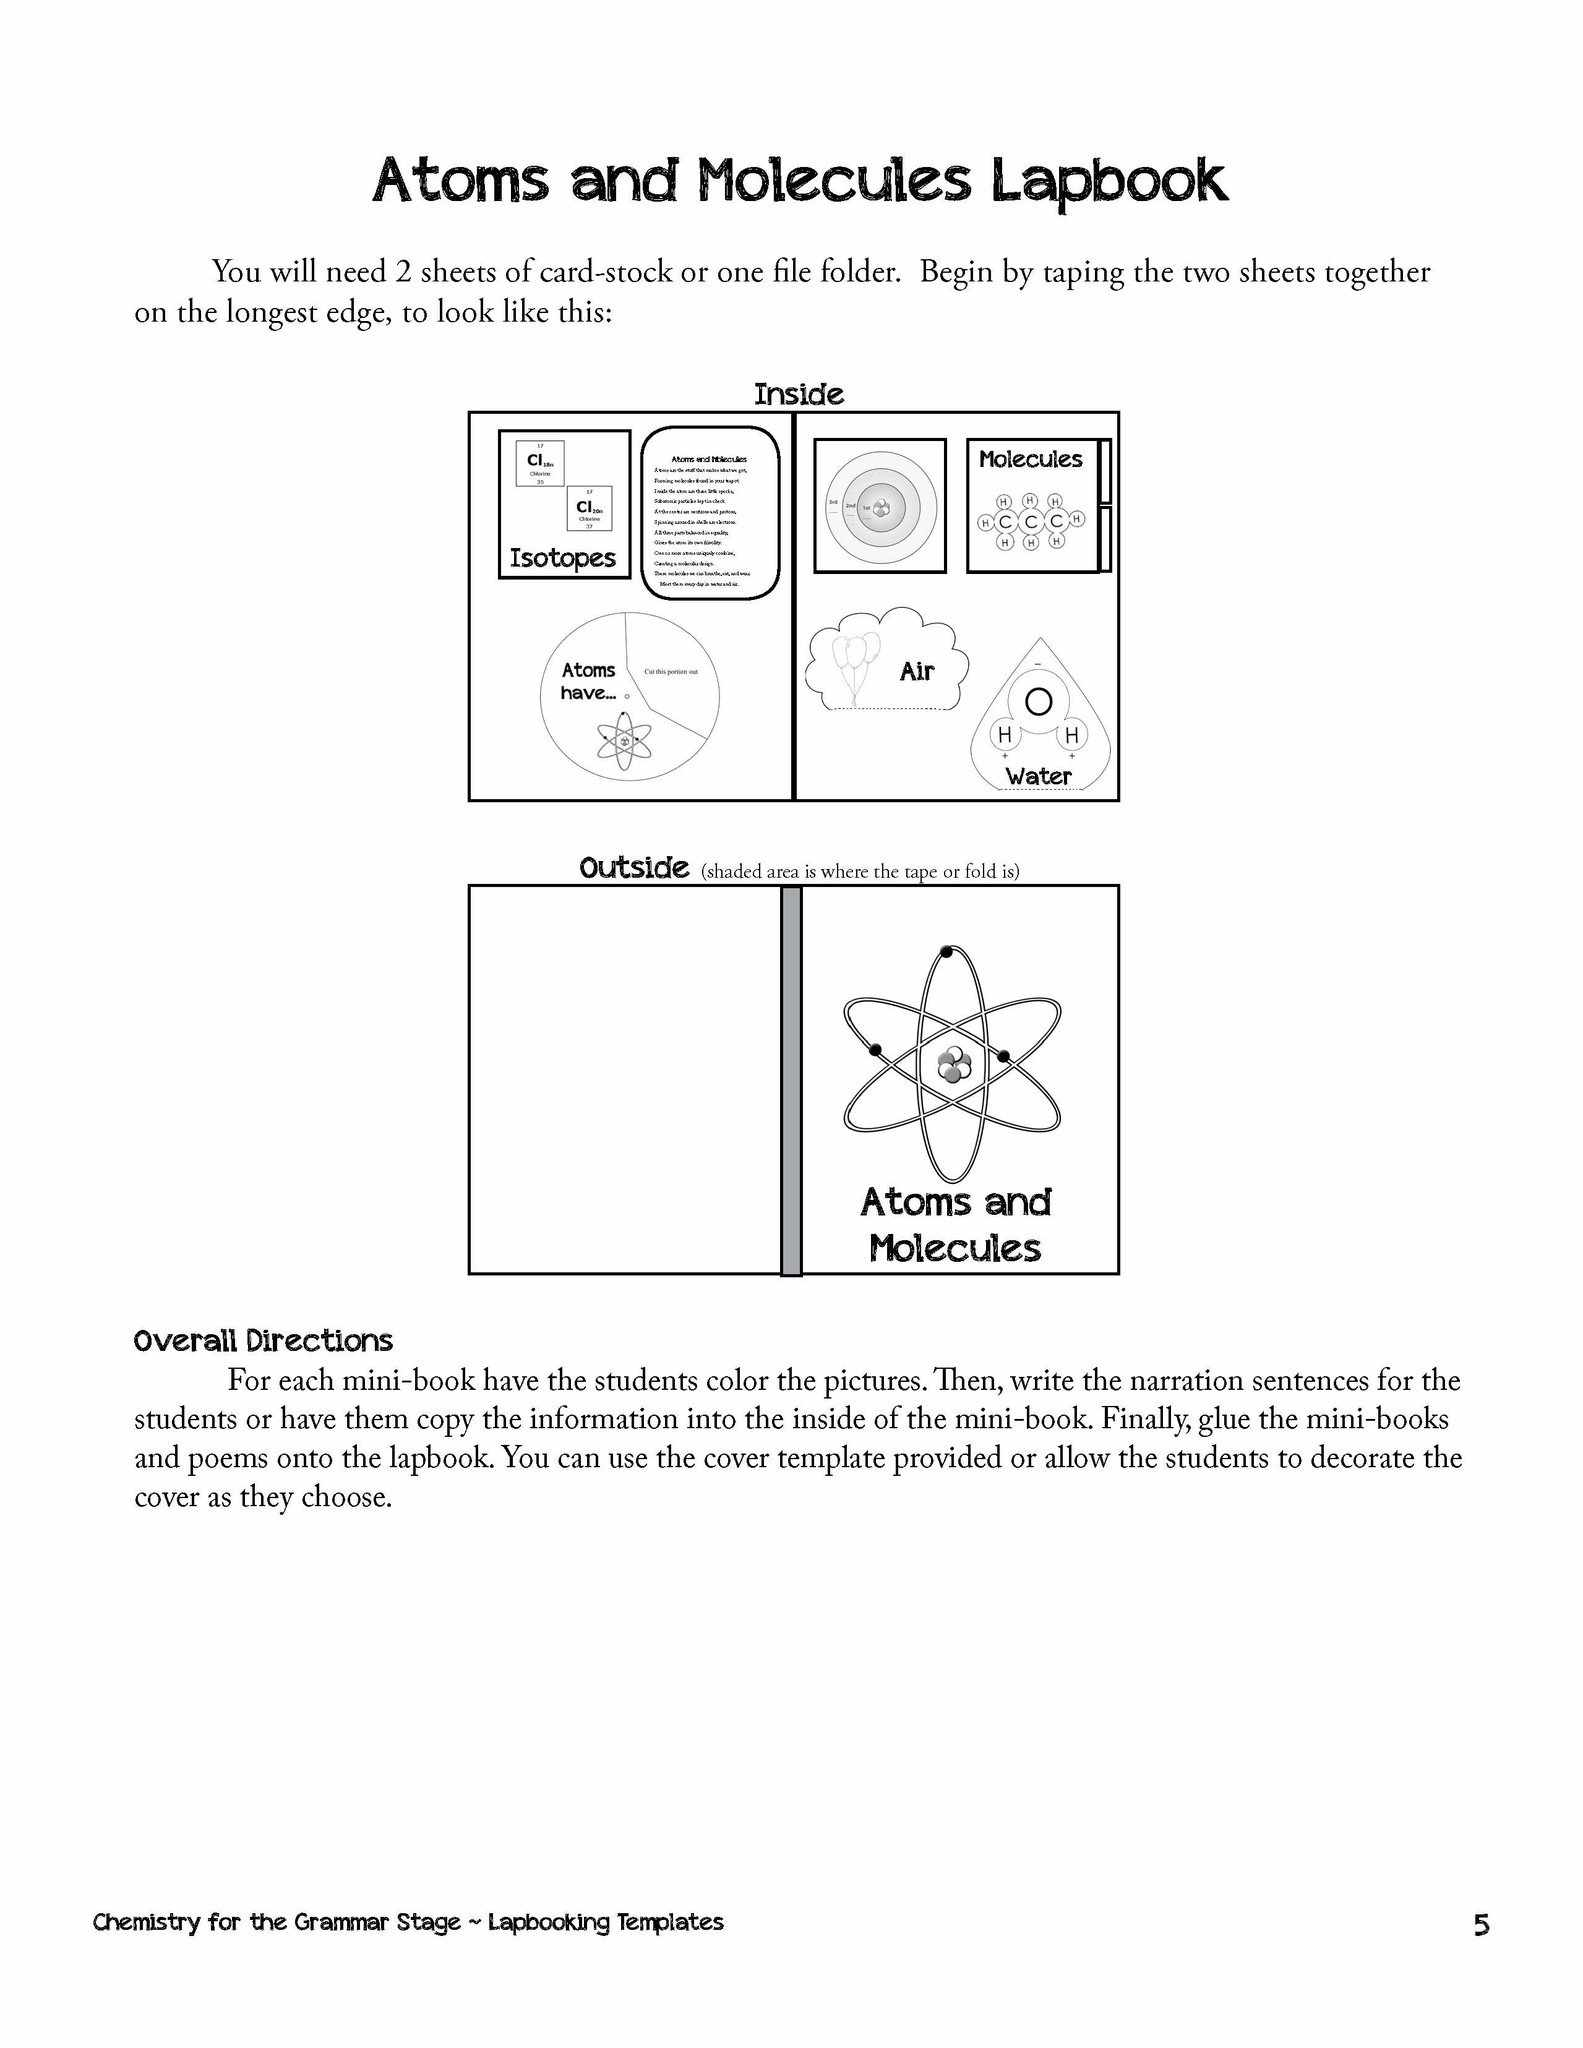 Book Cover Template For Students ~ Chemistry lapbooking templates ebook